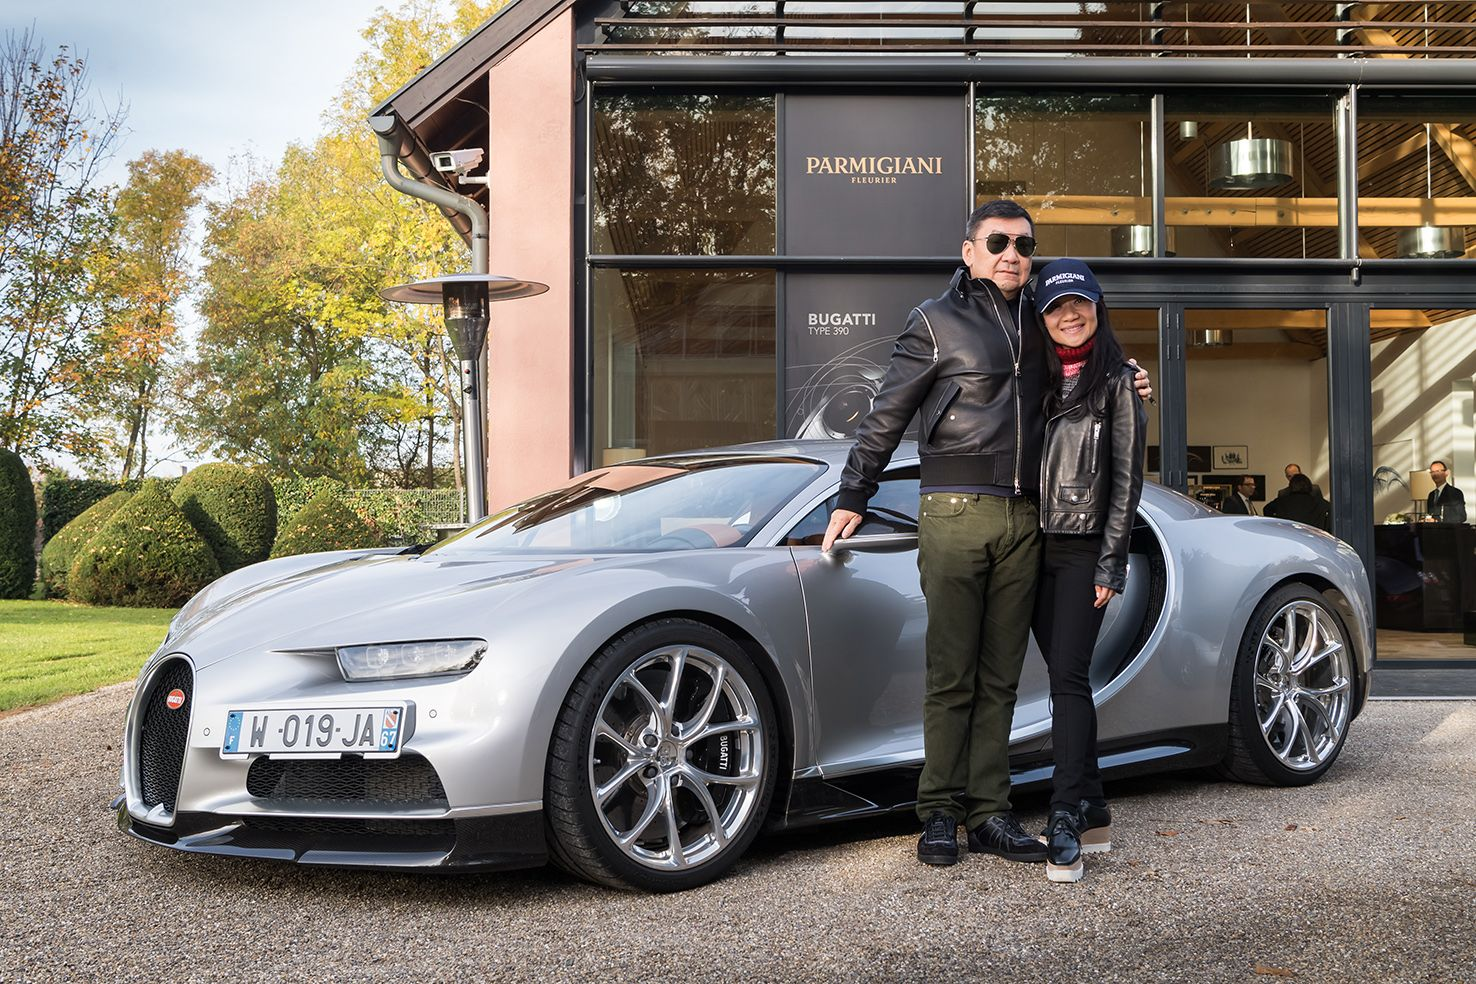 What Darren And Dana Cheong Learnt About The Parmigiani-Bugatti Partnership